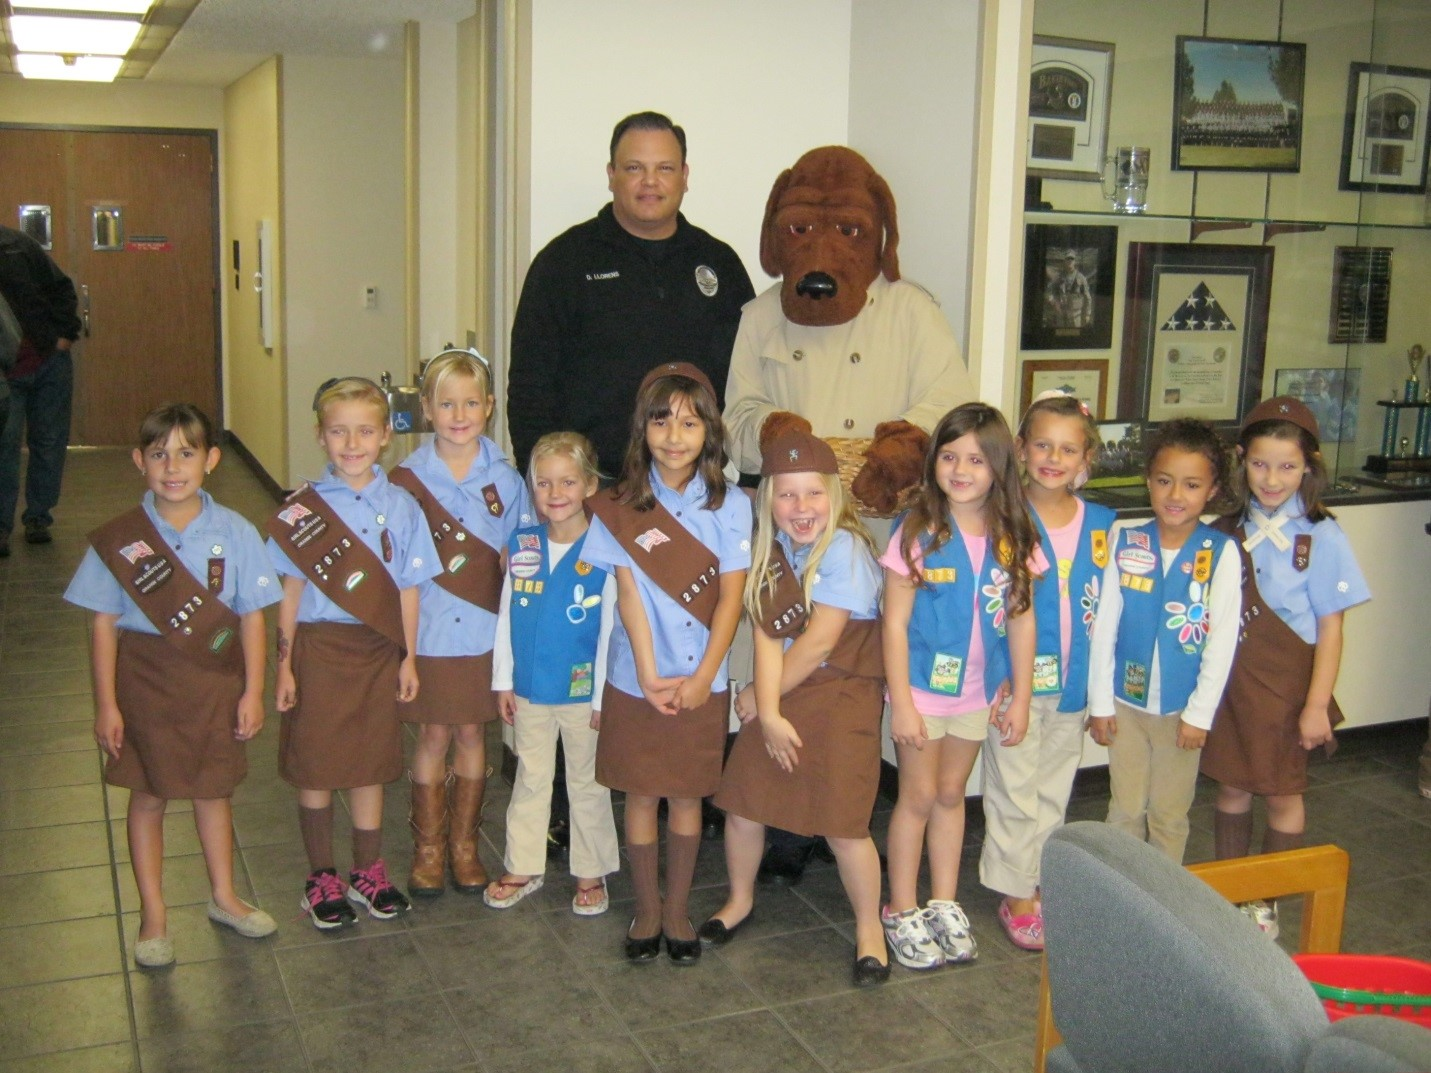 Chief with McGruff and a local group of Brownies